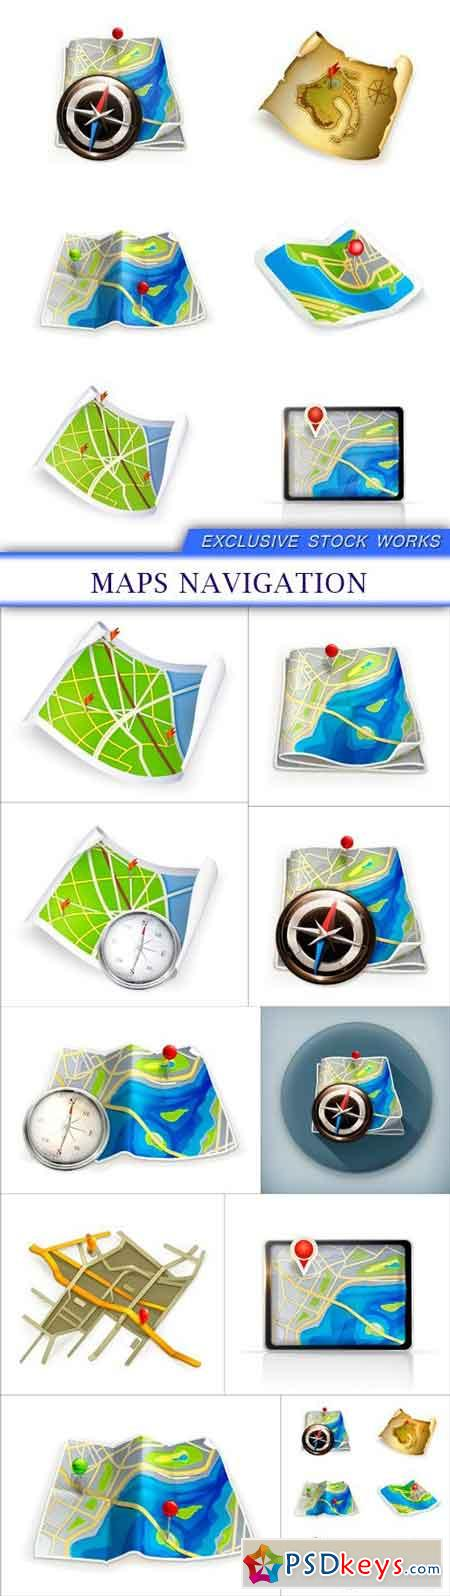 City maps building free download photoshop vector stock image maps navigation 10x eps gumiabroncs Gallery